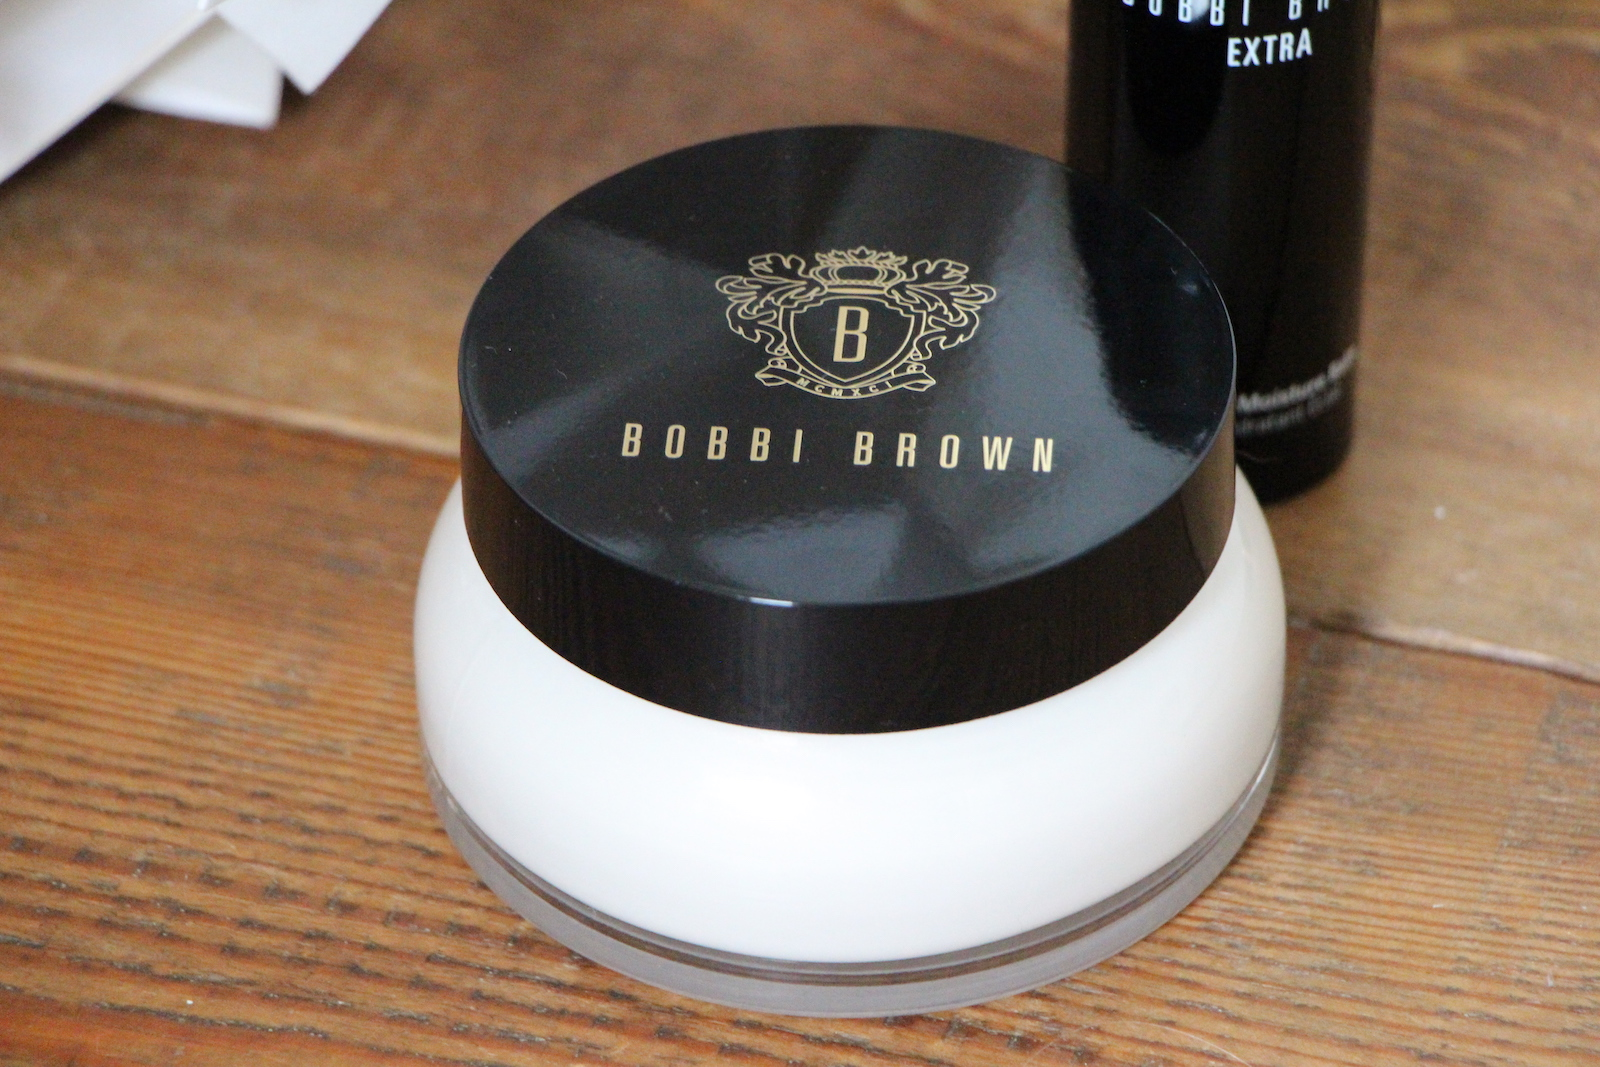 Bobbi Brown Extra Illuminating Moisture Balm Review